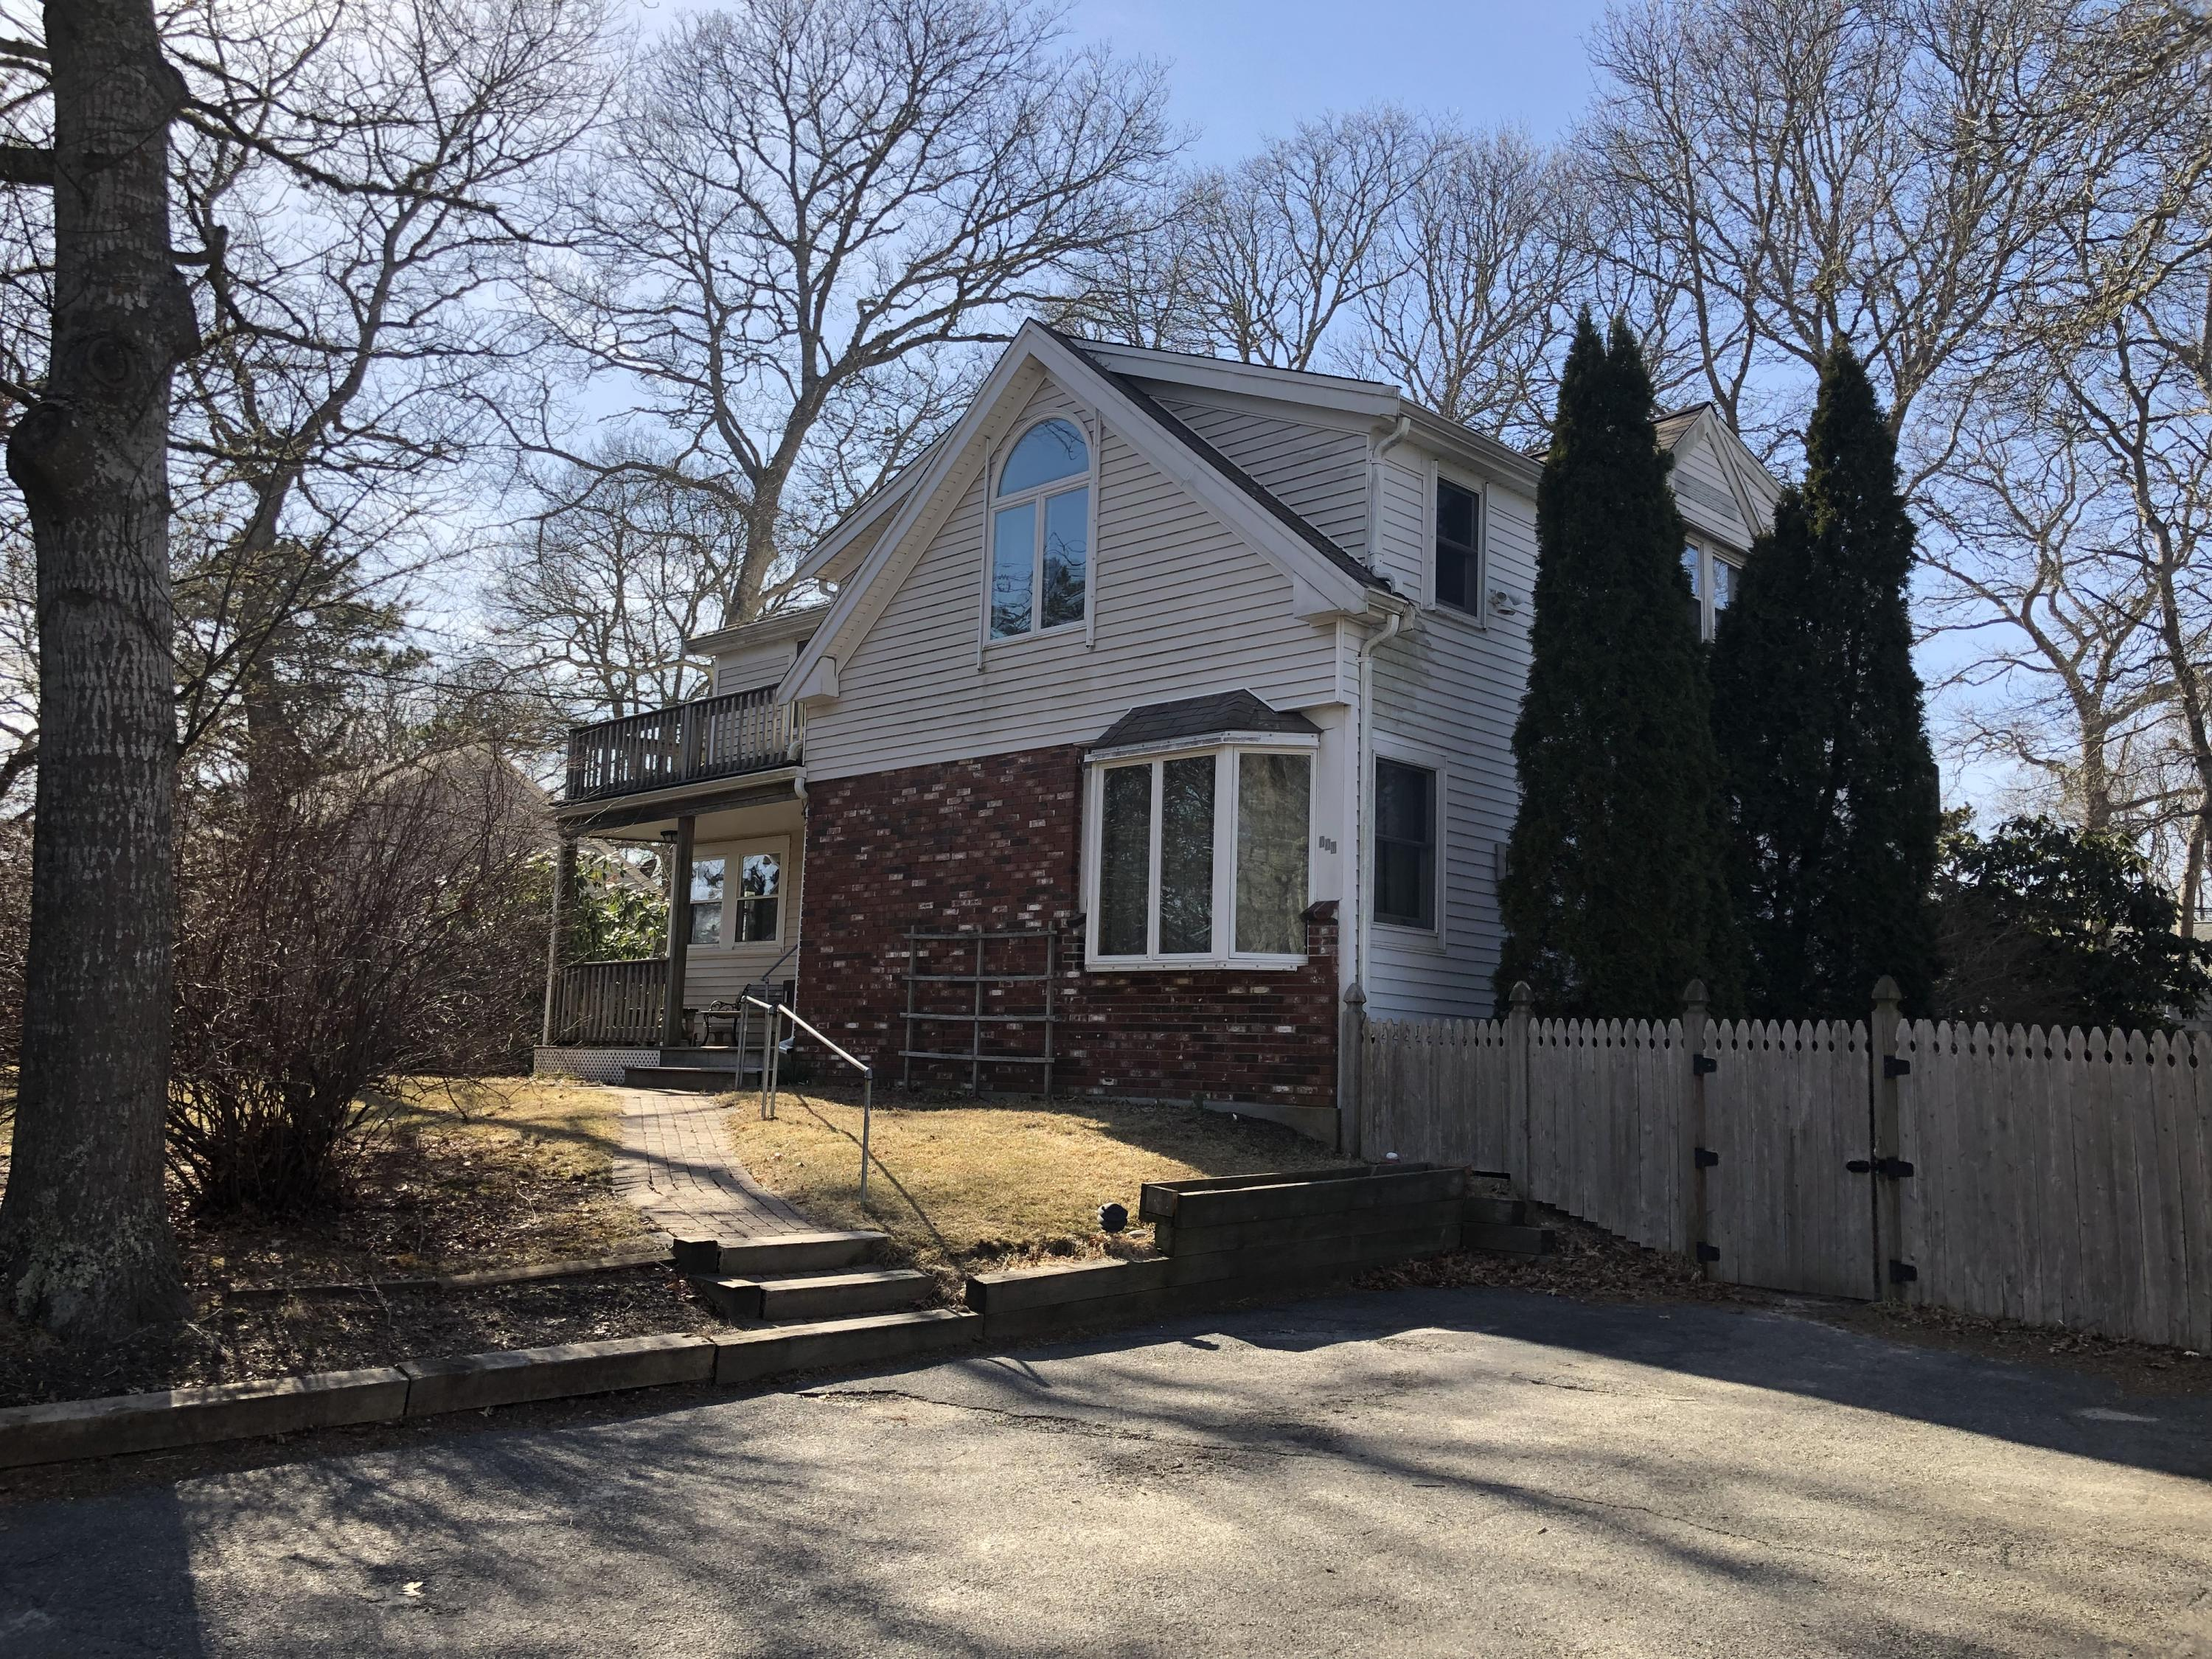 110 Clifton Lane Barnstable, MA 02632